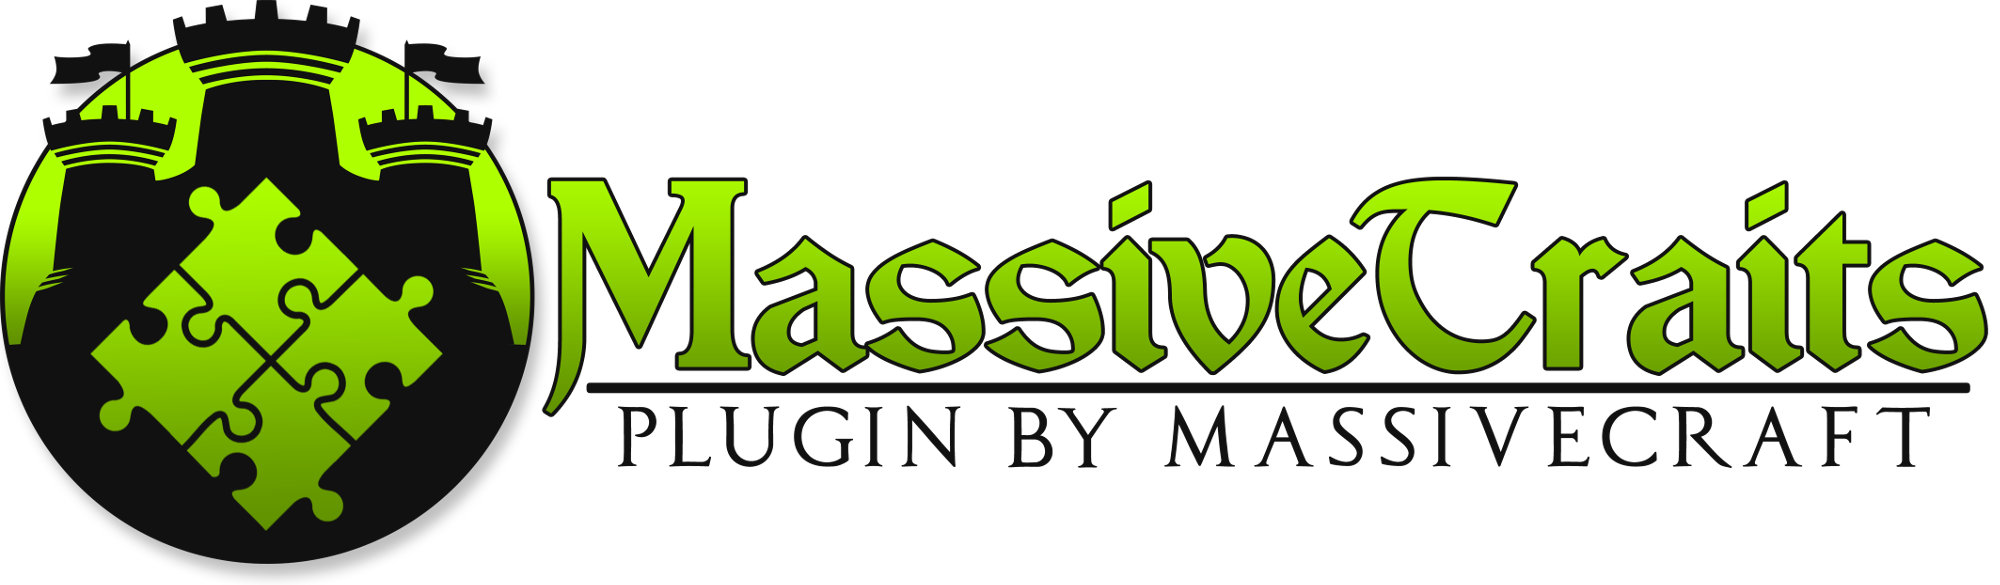 massivecraft-logotype-plugin-massivetraits-2000